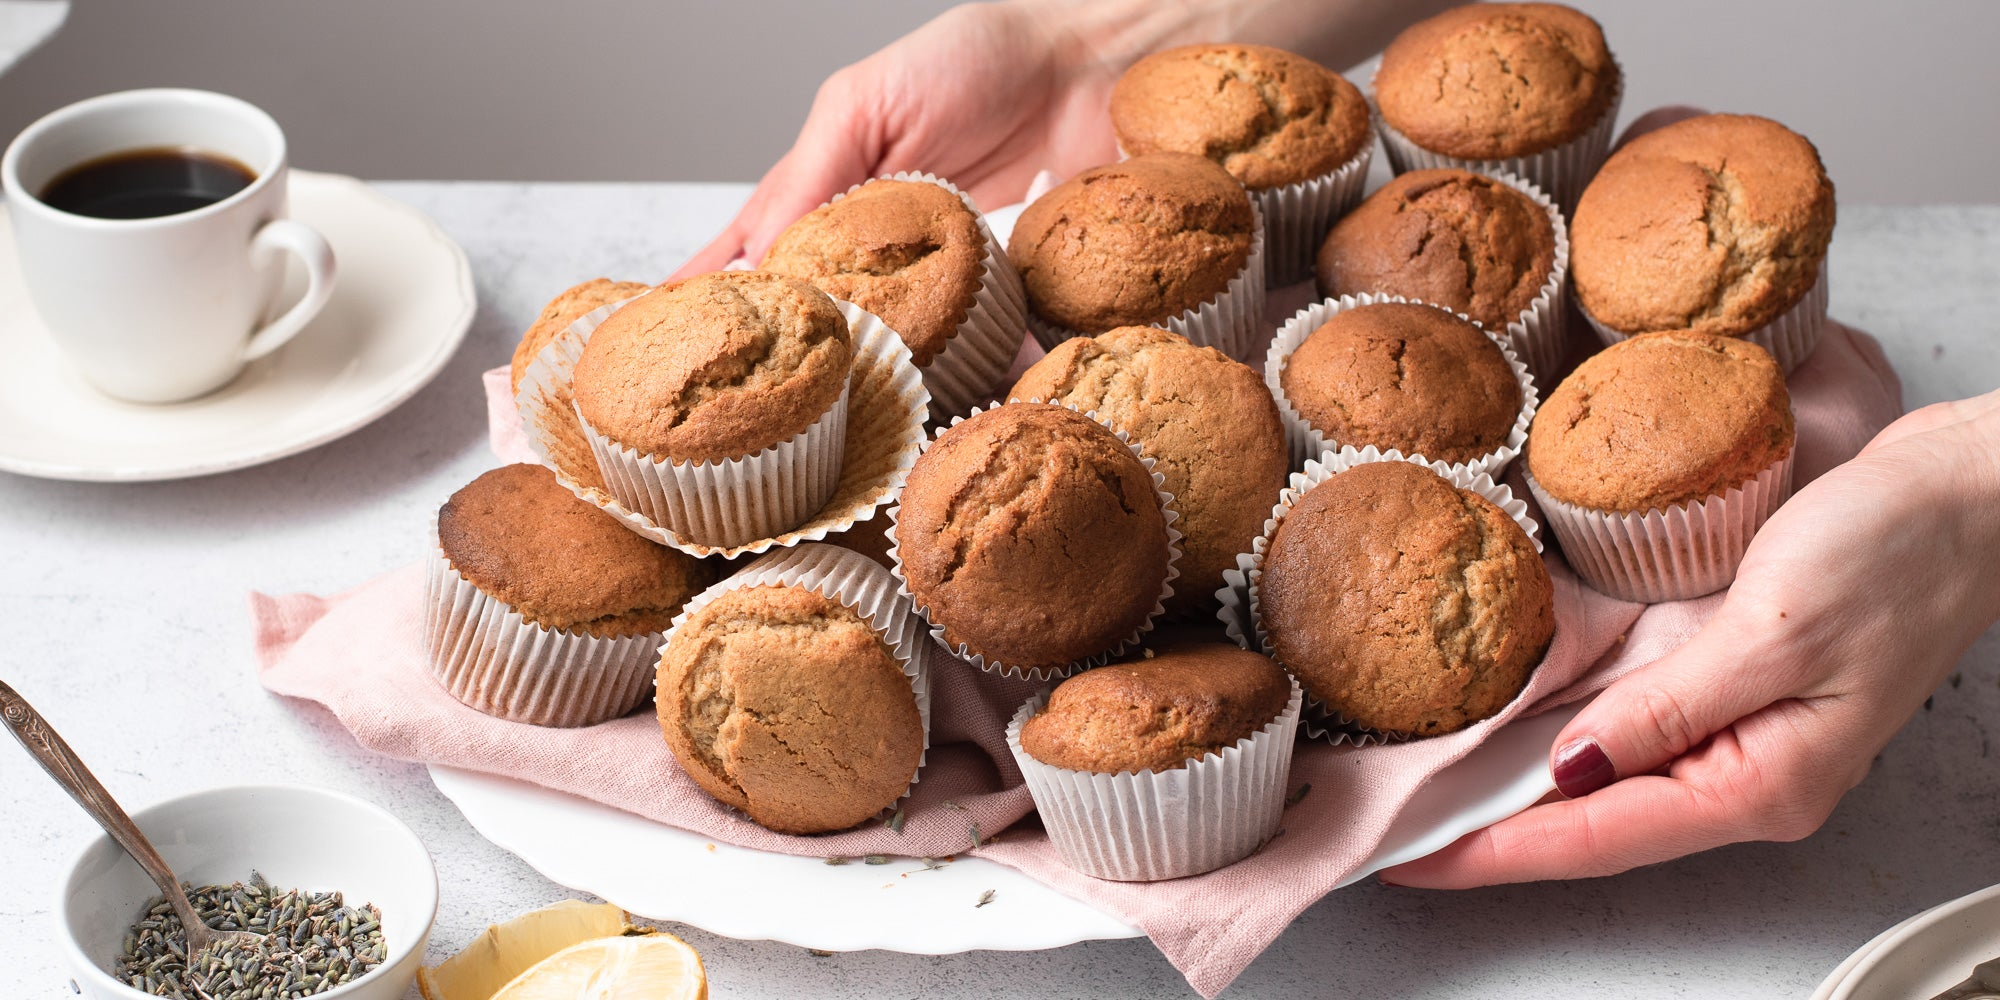 Pile of muffins